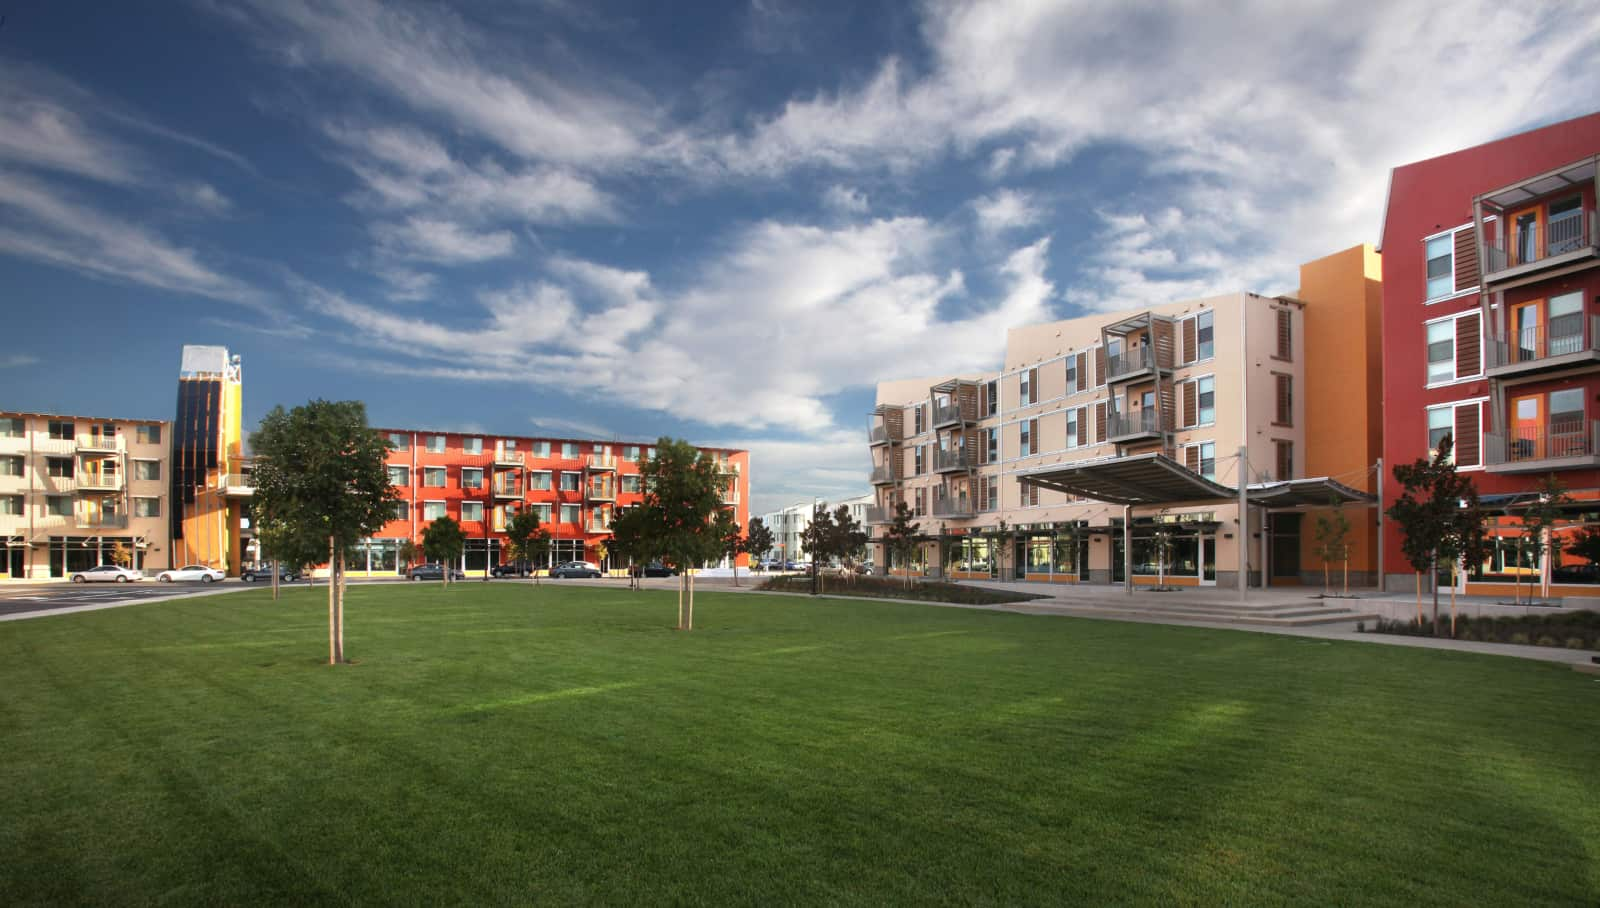 Exterior of several 4 story apartment buildings with a lawn in the foreground.